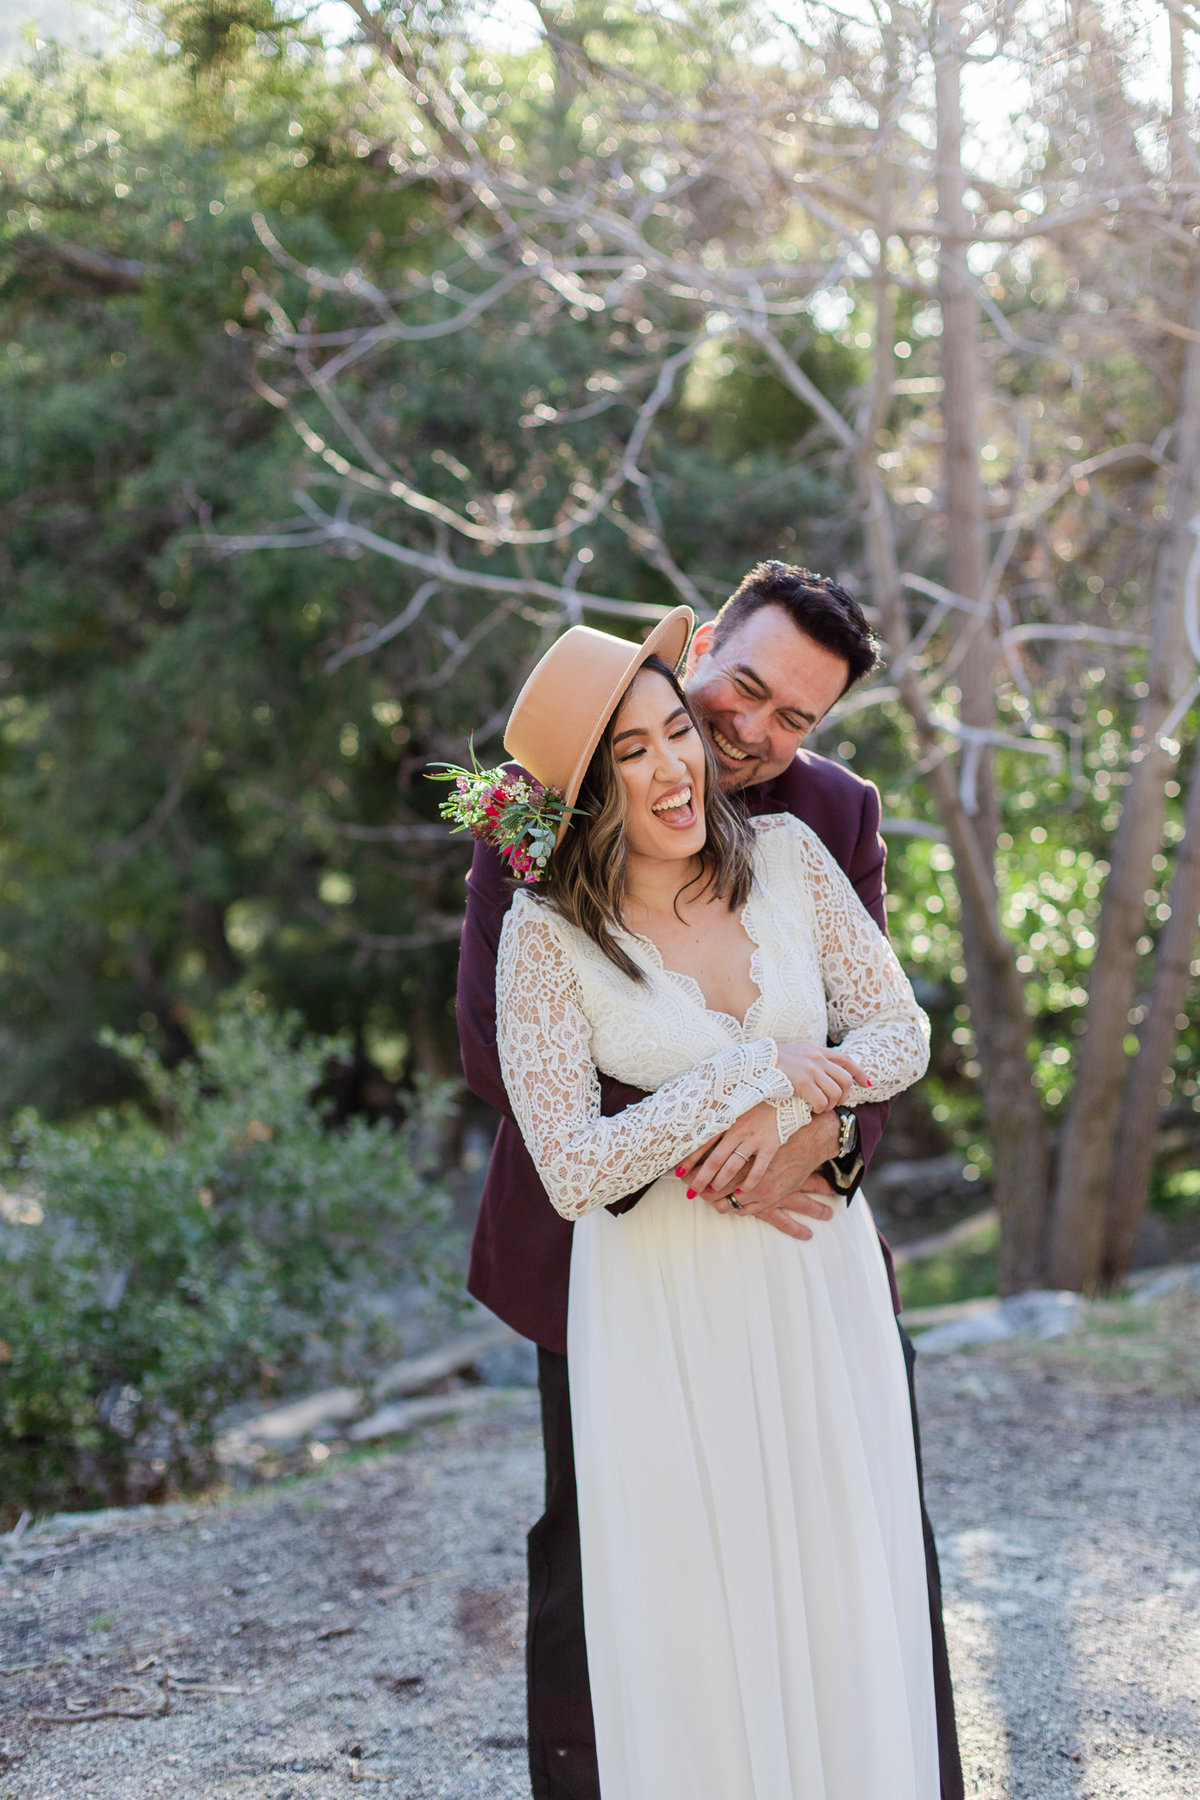 Mt. Baldy Elopement, Mt. Baldy Styled Shoot, Mt. Baldy Wedding, Forest Elopement, Forest Wedding, Boho Wedding, Boho Elopement, Mt. Baldy Boho, Forest Boho, Woodland Boho-20